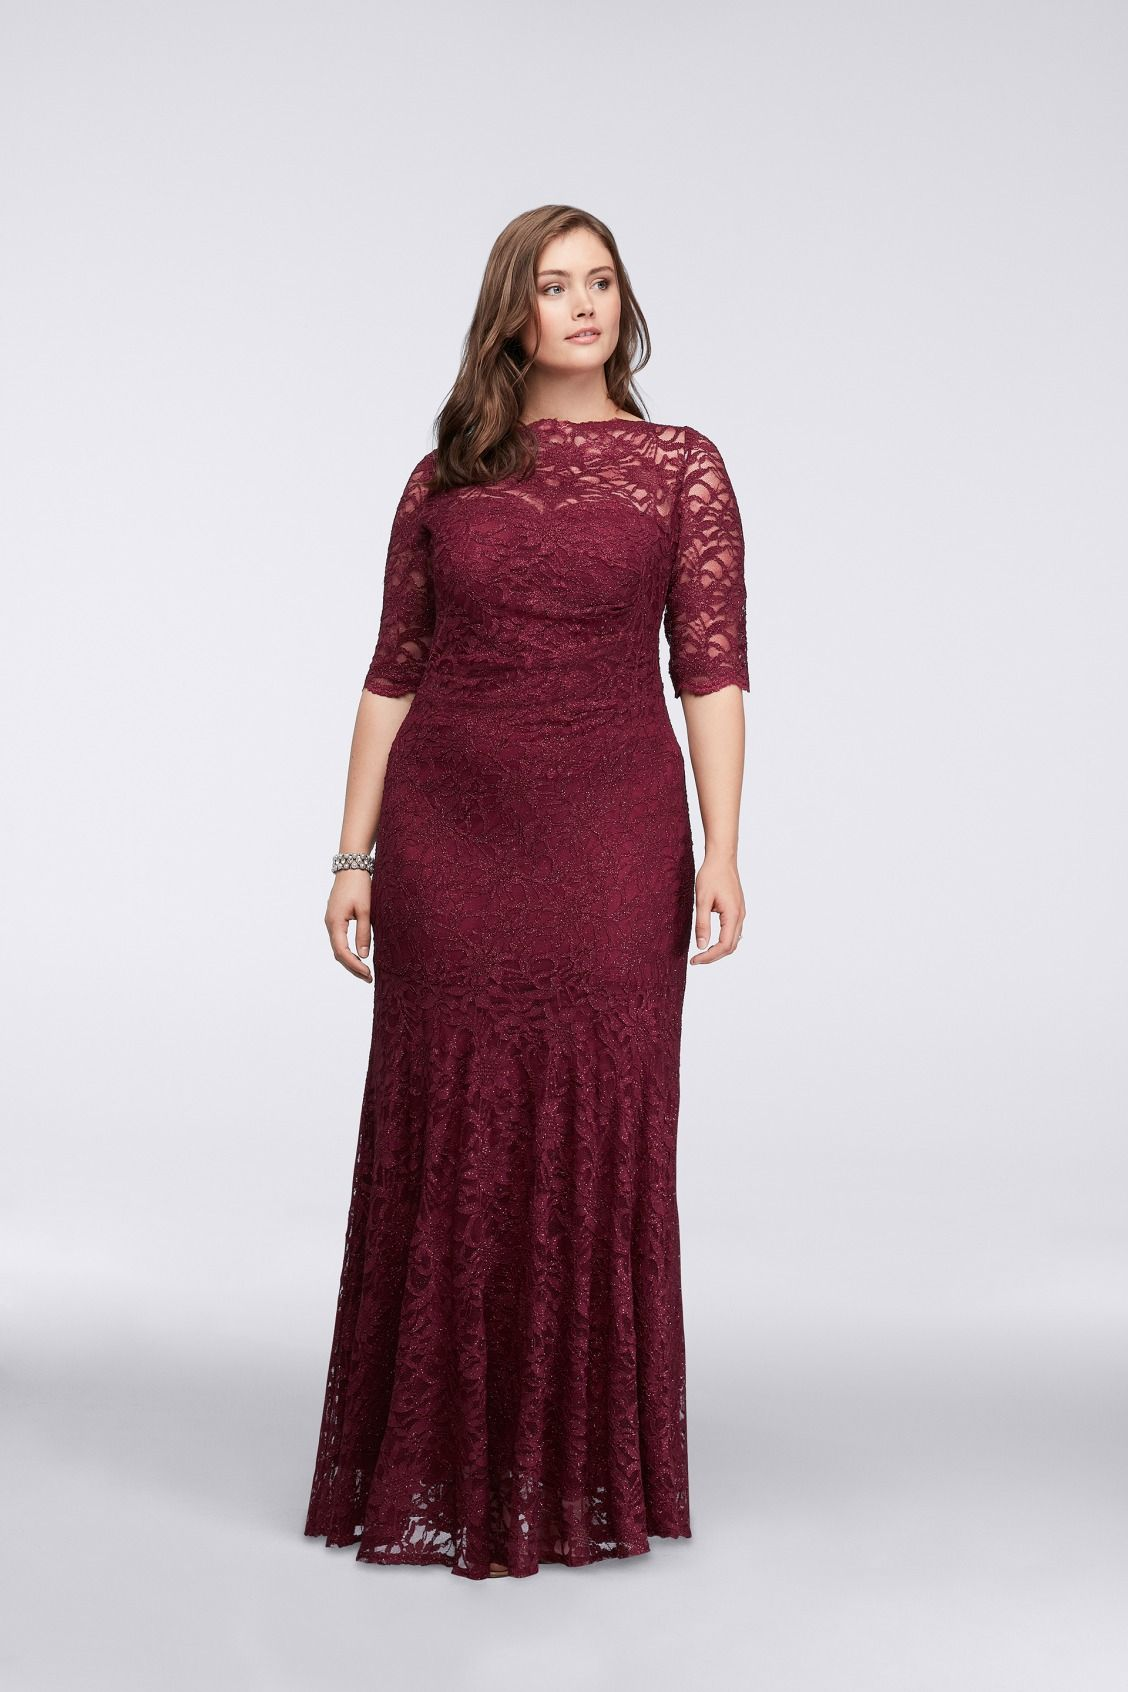 d7dbc2725b716 Long 3 4 Sleeve All Over Glitter Lace Mermaid Burgundy Mother of the Bride  Dress